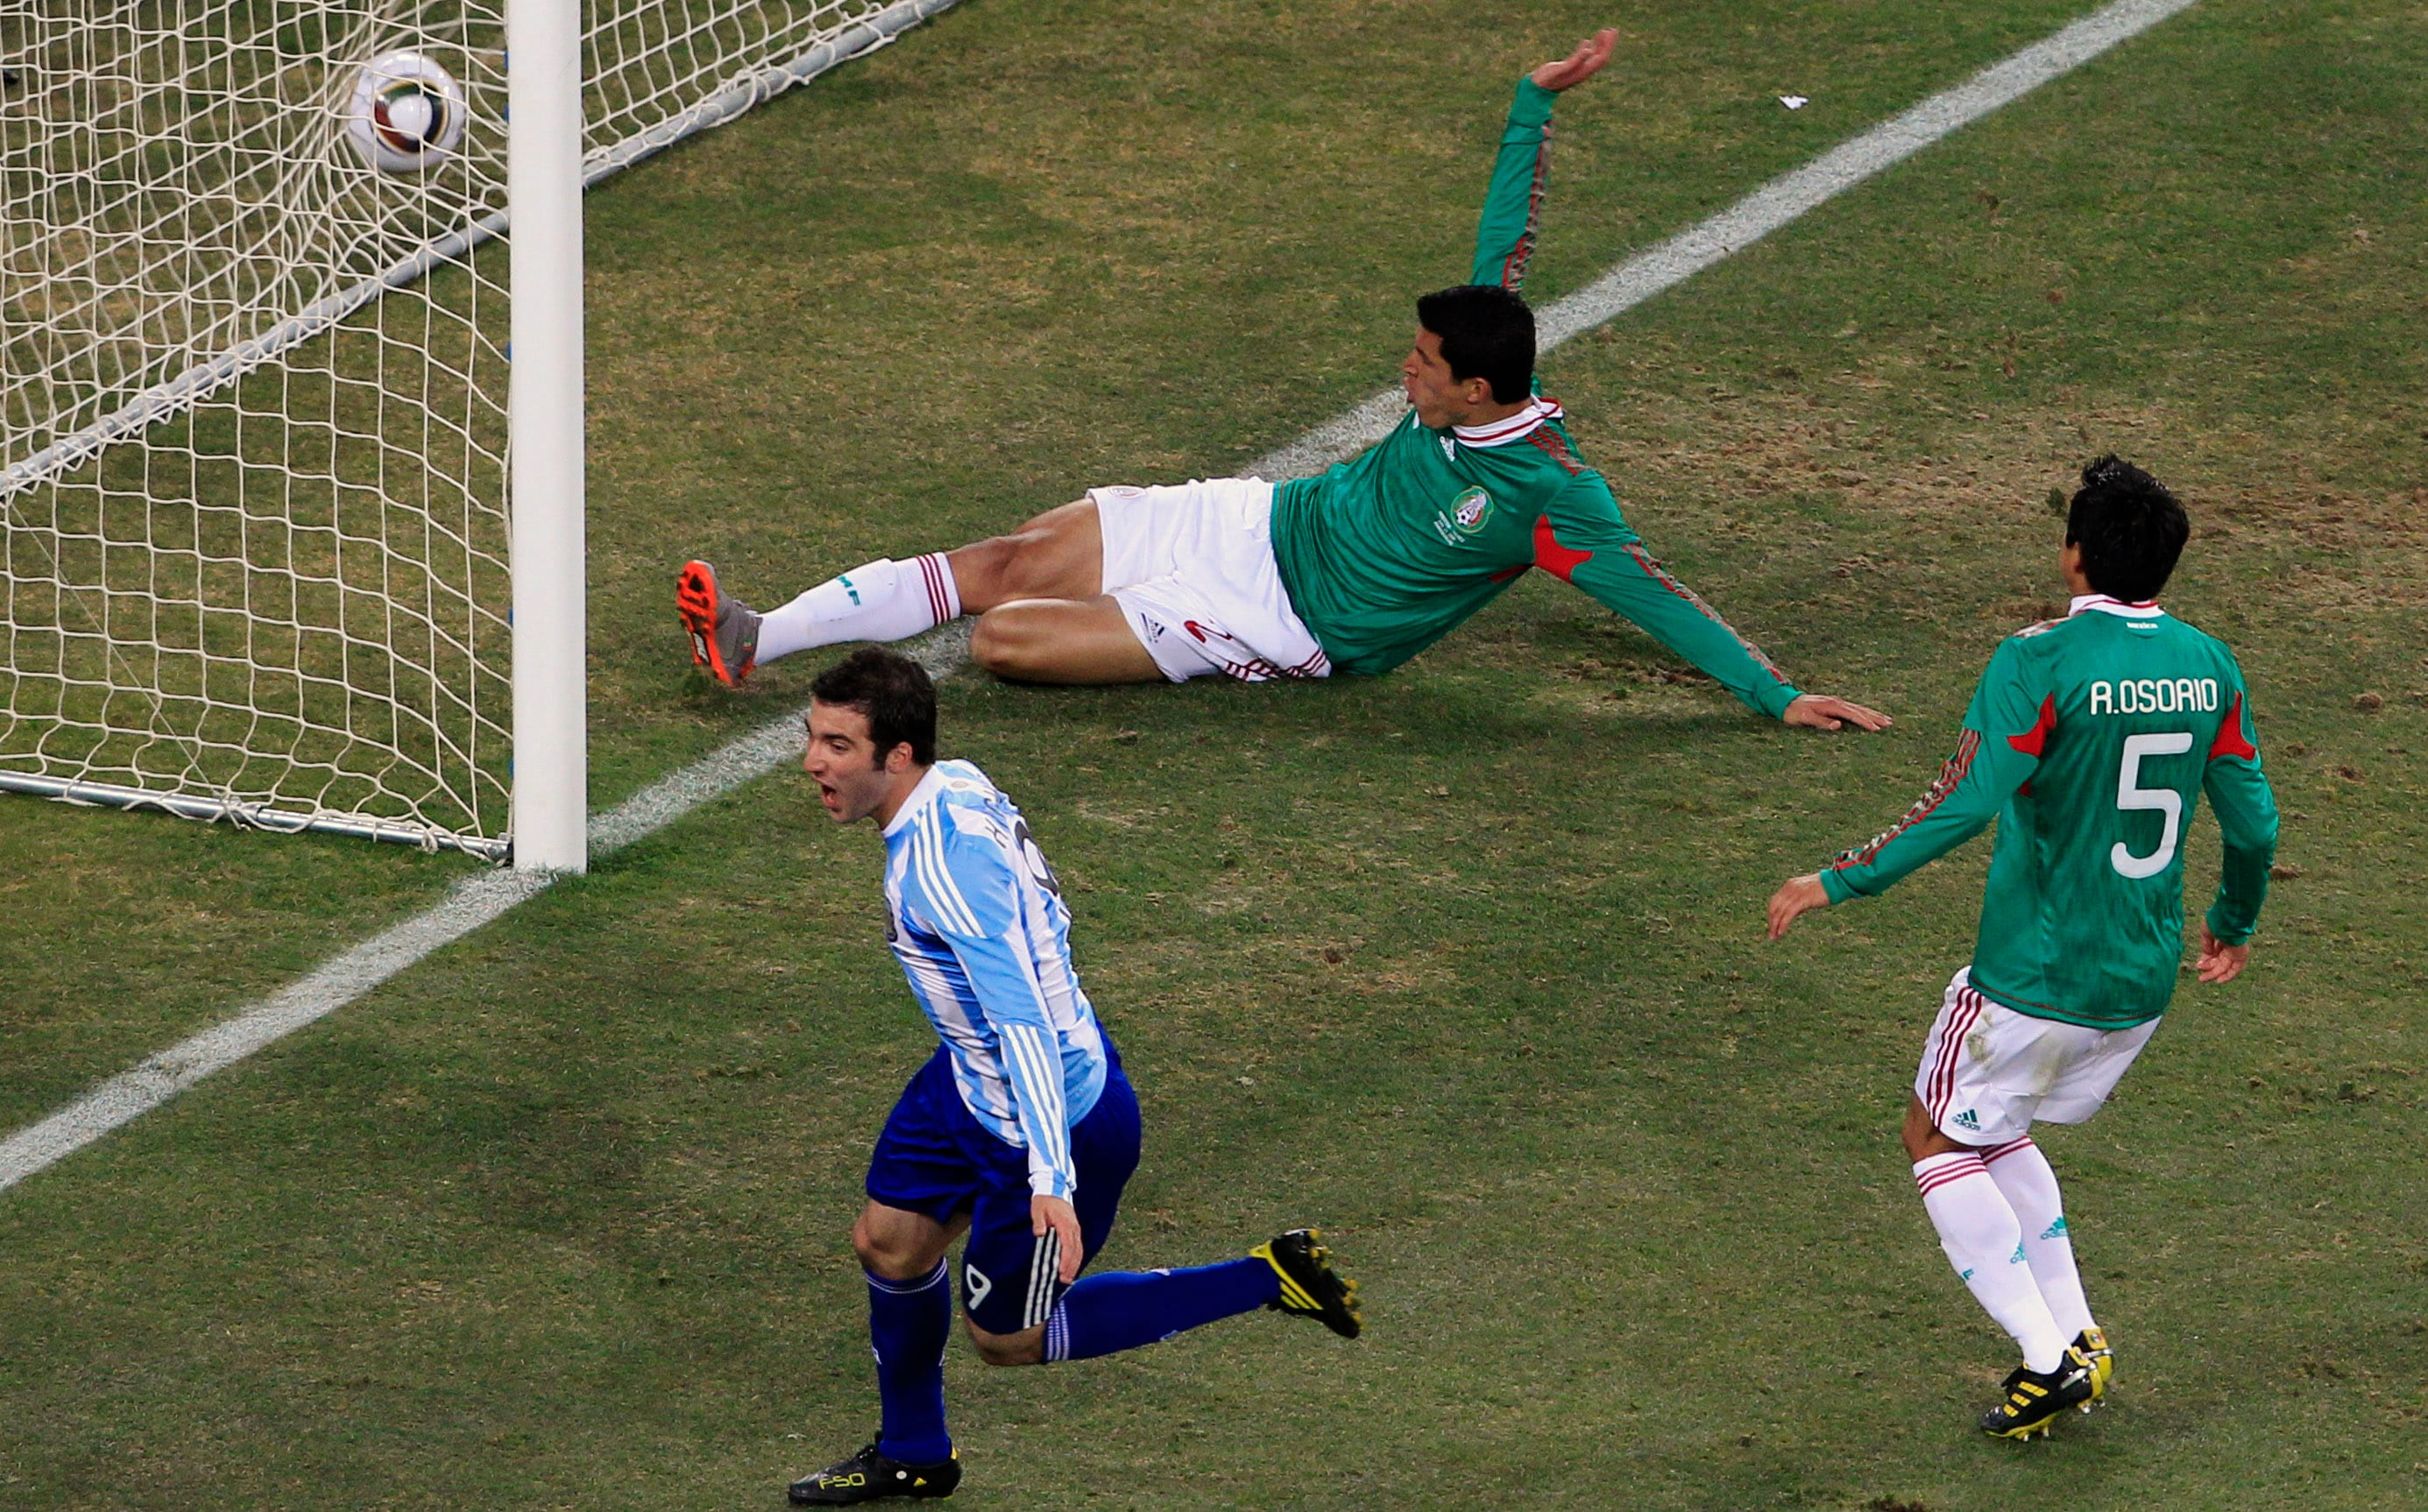 Having gone a goal behind after a disputable goal scored by Carlos Tevez (who was certainly in an off-side position), the Mexicans not only lost their cool but also their bearings.<br><br> Defender Osario gifted the 'Albiceleste', a second when his attempted juggle went badly wrong and fell straight in the path of an advancing Higuain who then rounded off the keeper to slot home.